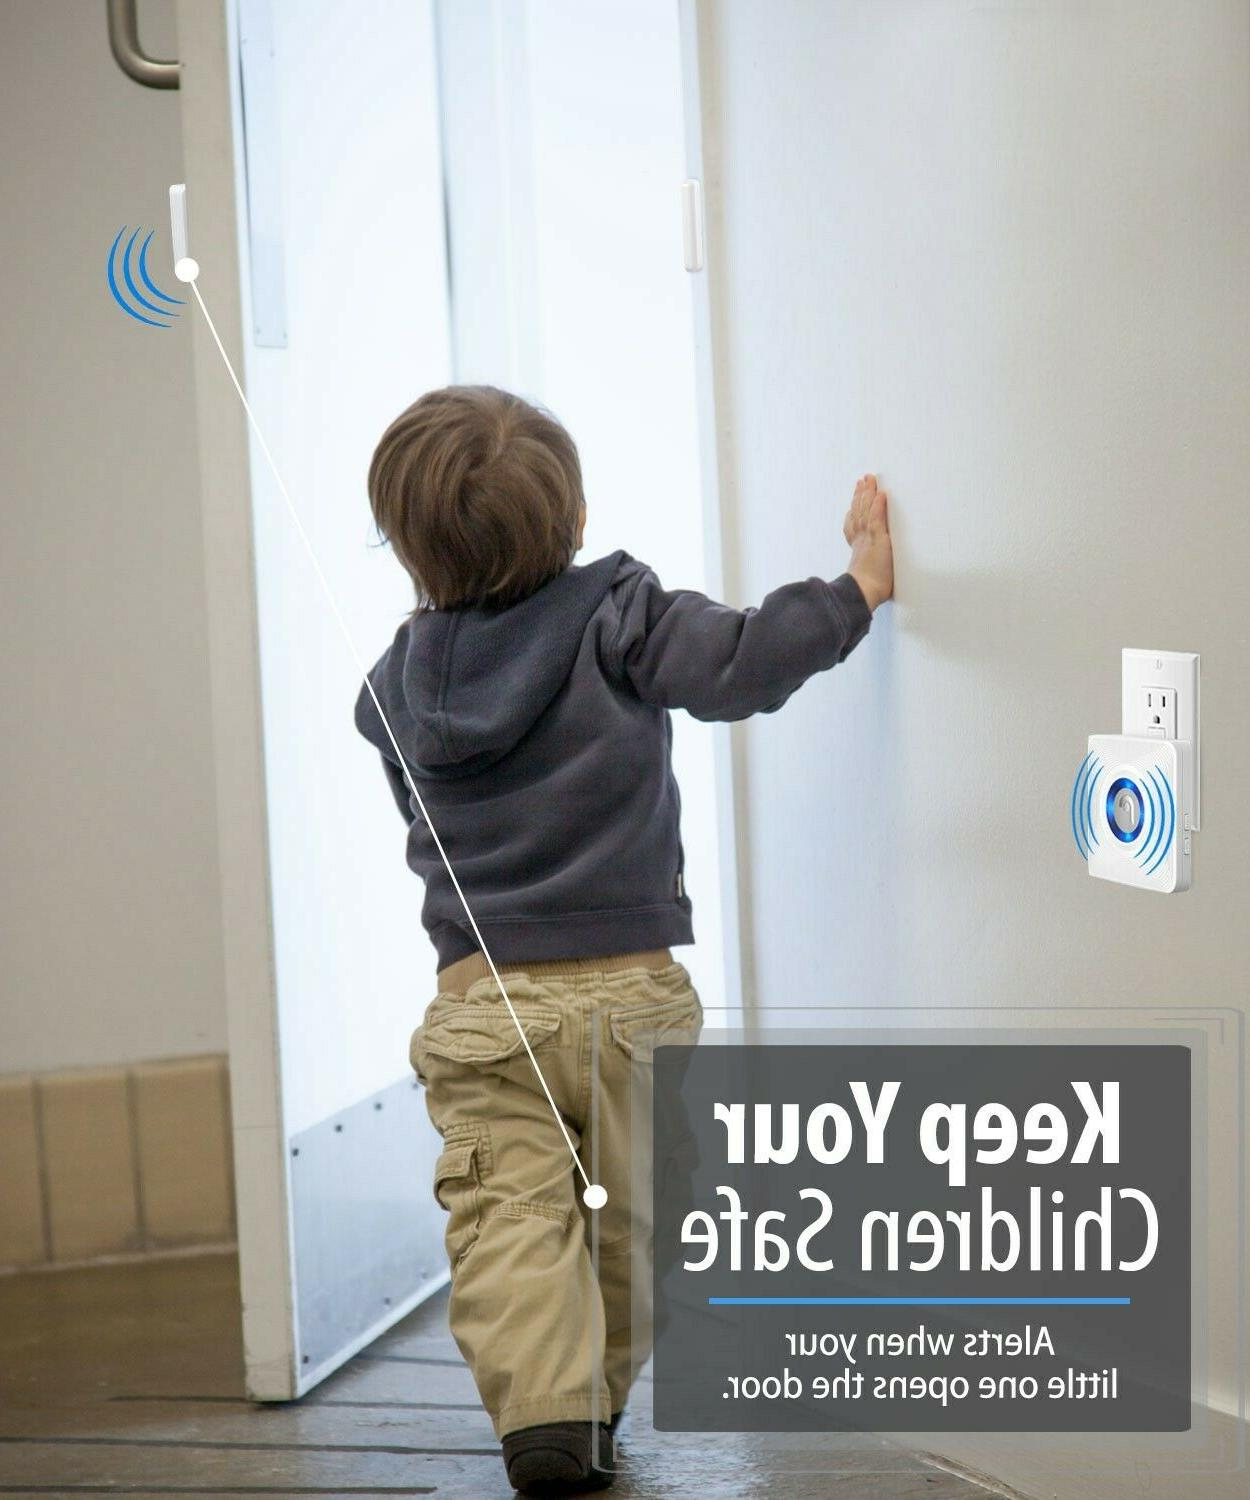 Wireless Security Chime